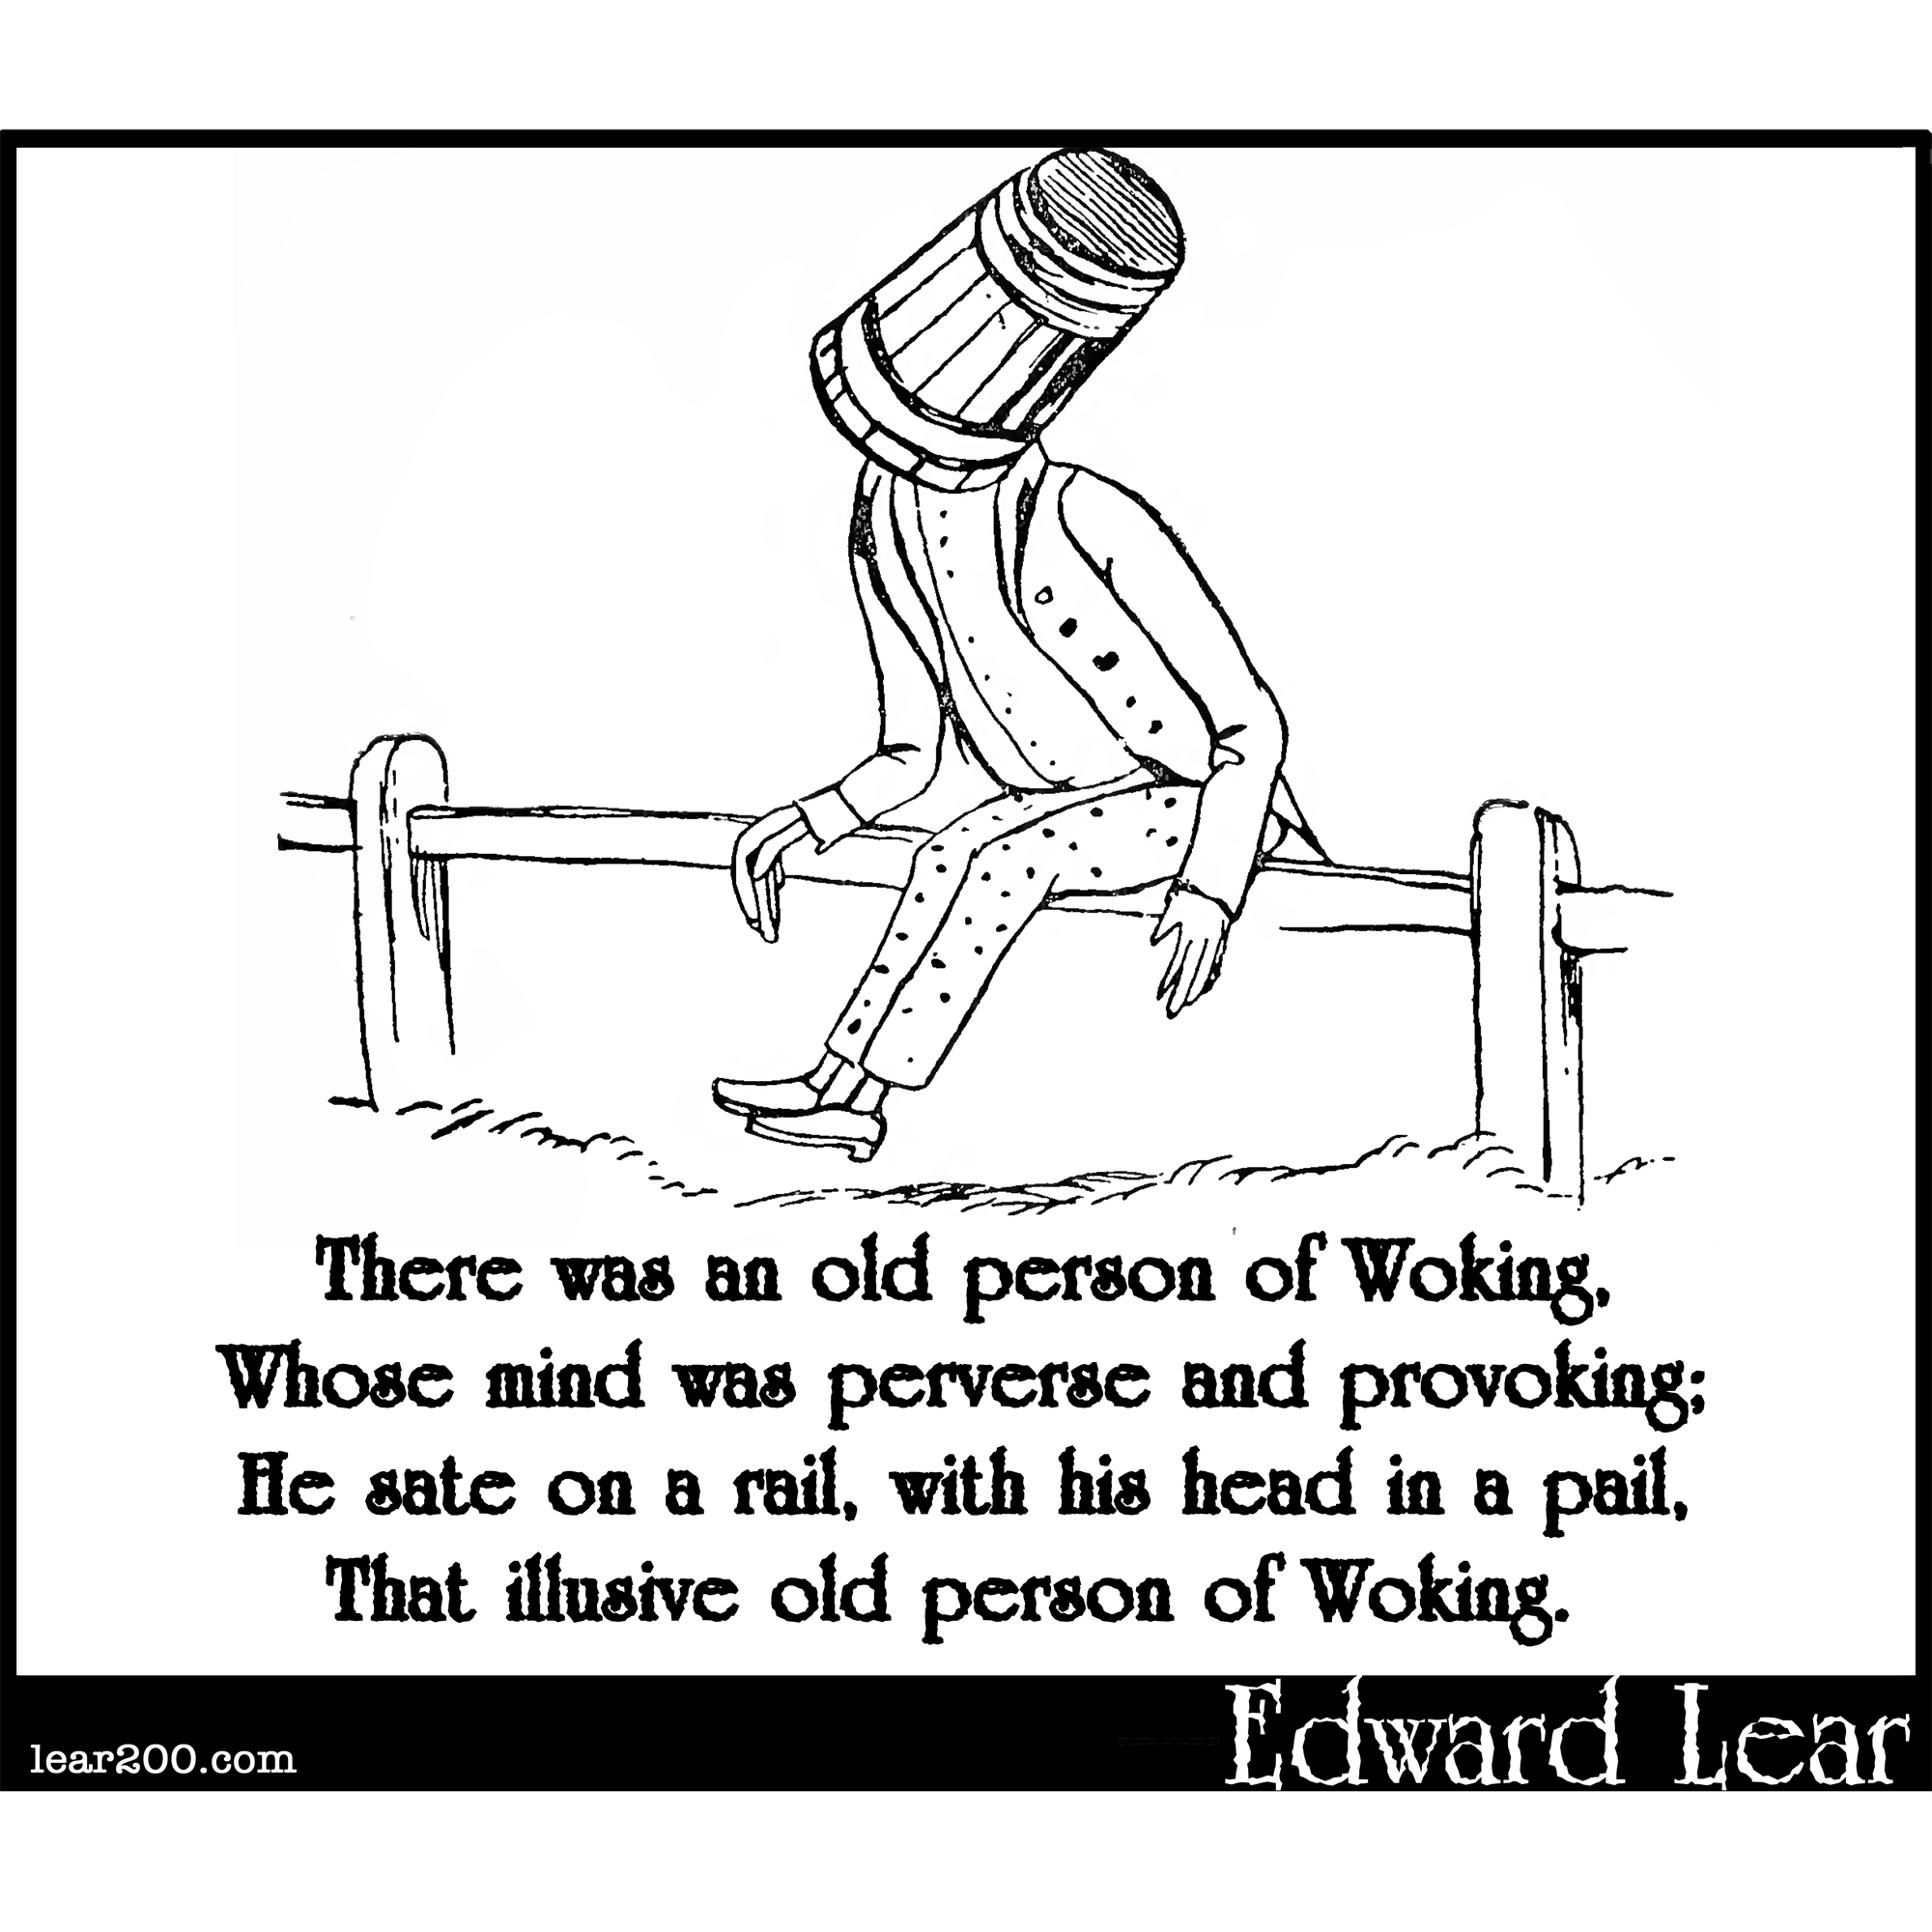 There was an old person of Woking